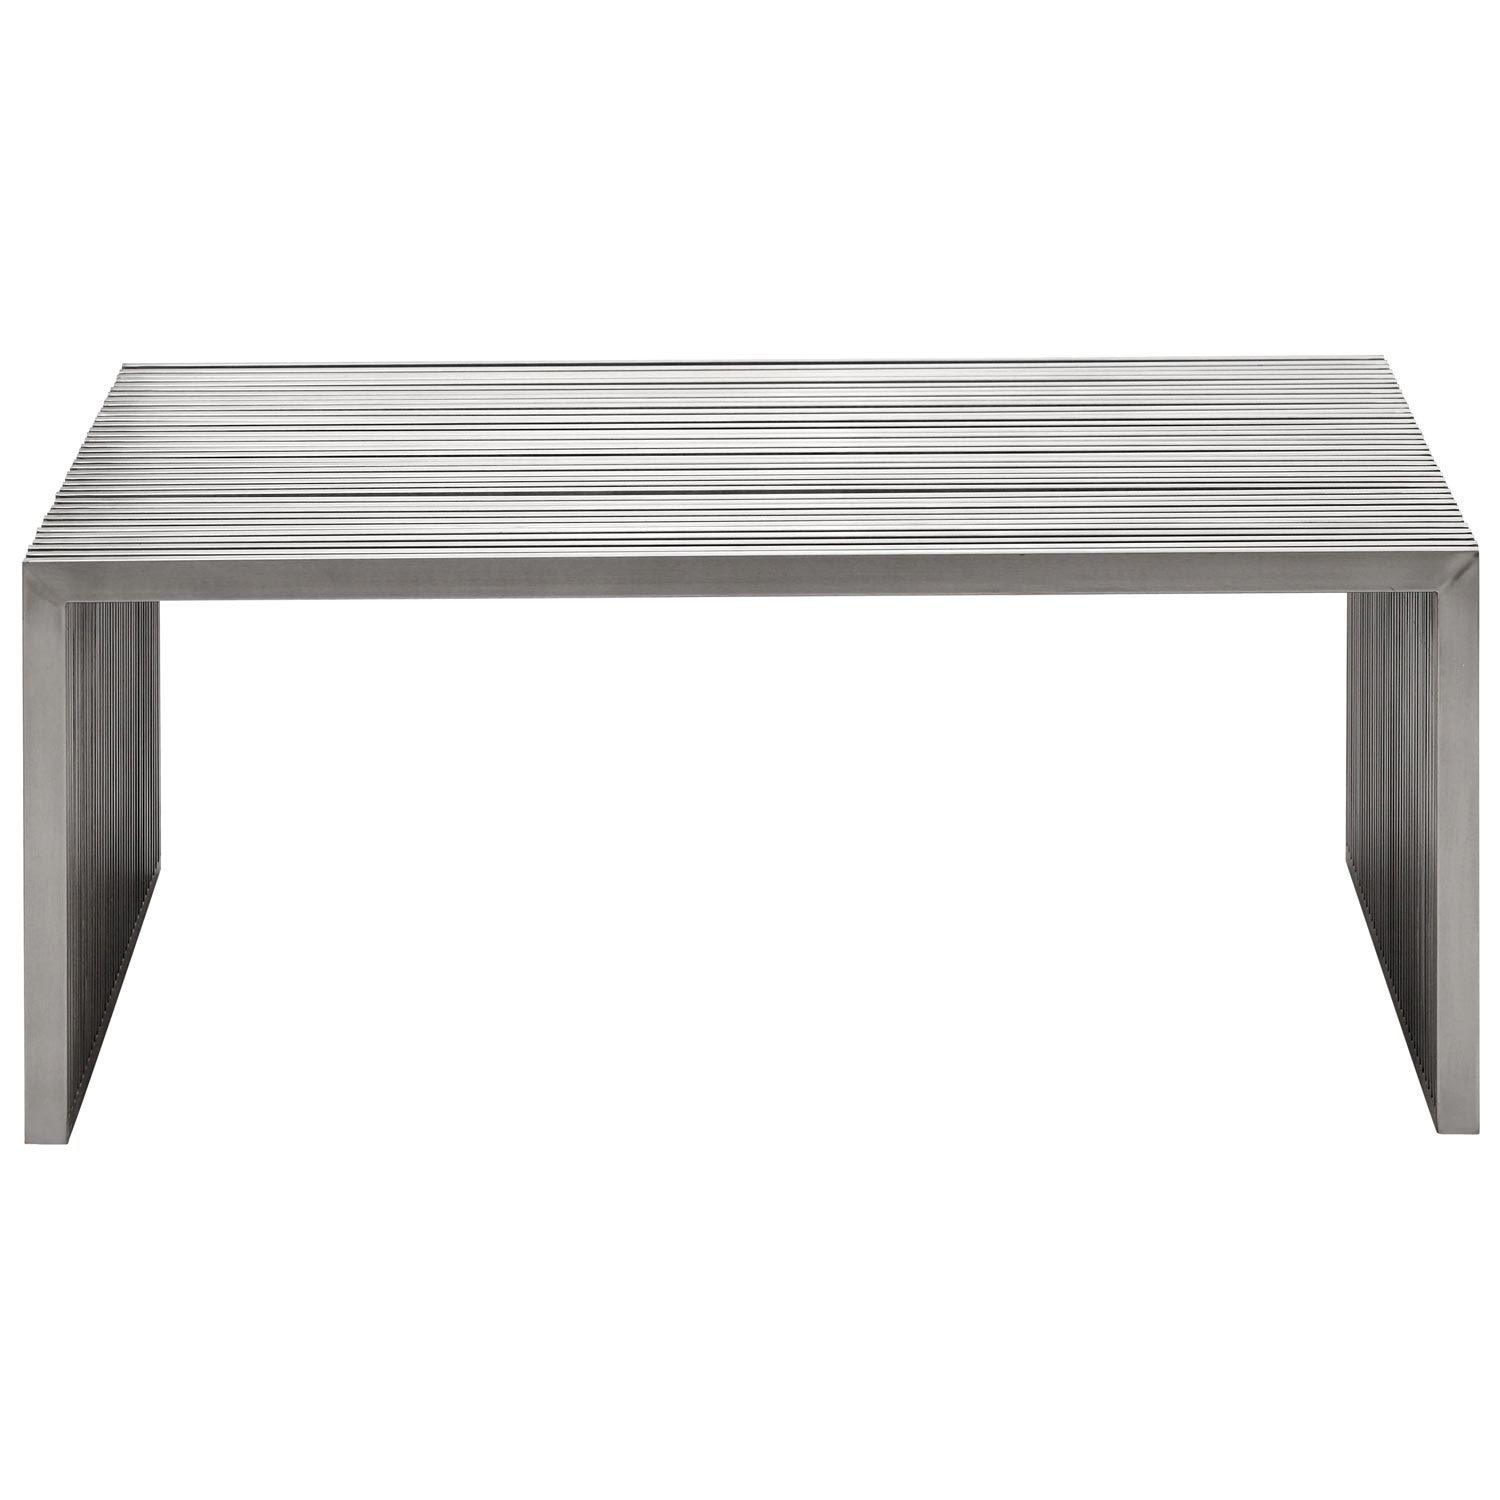 Novel Square Coffee Table - Stainless Steel - ZM-100084